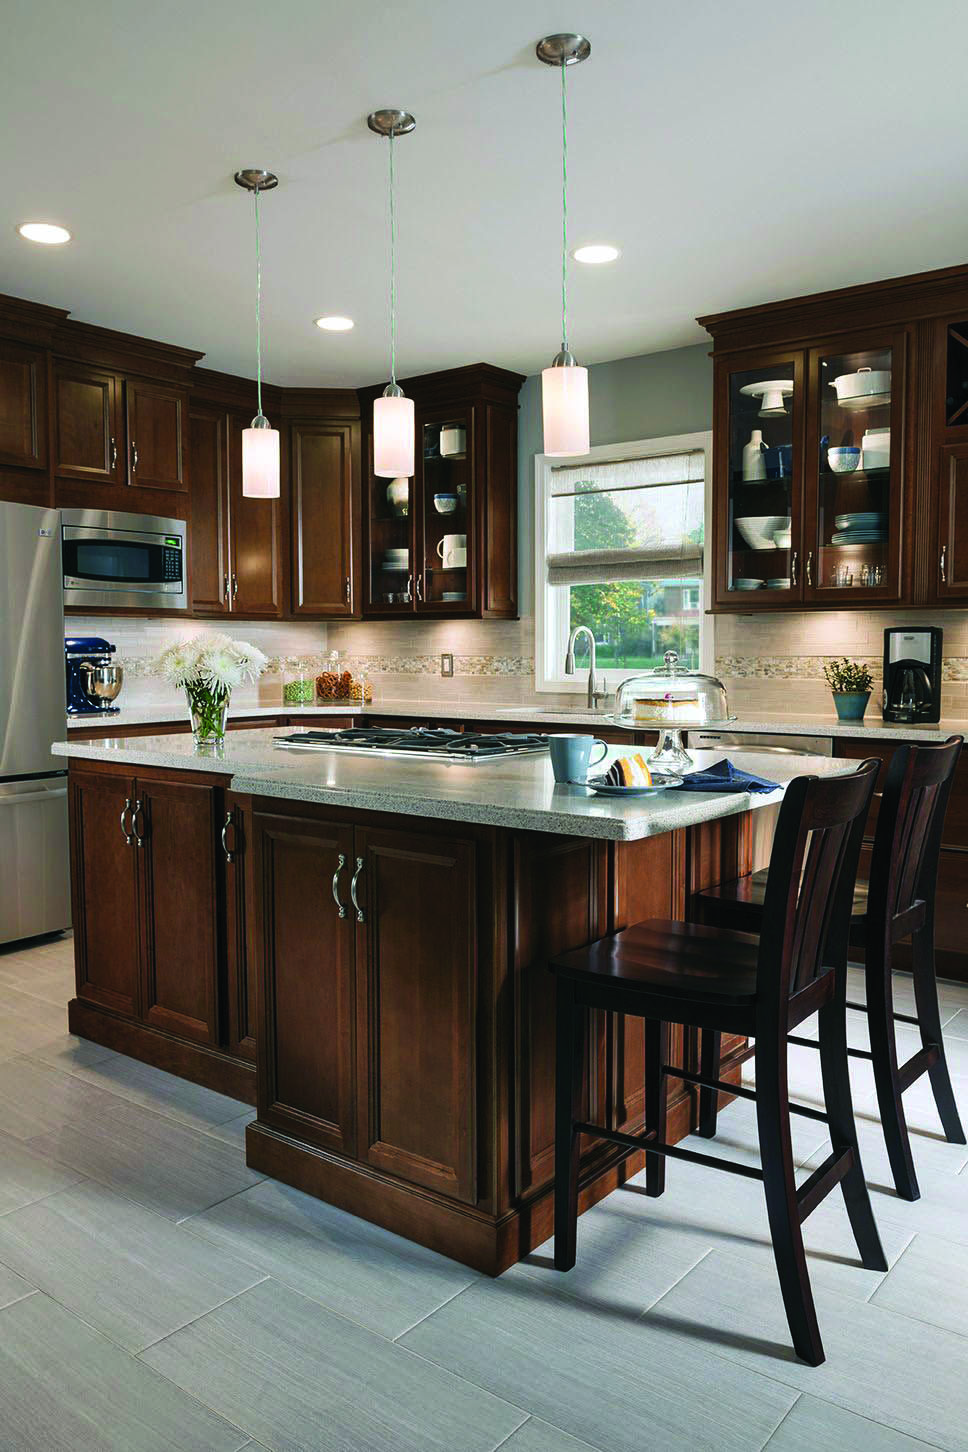 Dream Kitchen Cherry Cabinets And Granite Cherry Cabinets Kitchen Kitchen Cabinets And Countertops Cherry Wood Kitchens